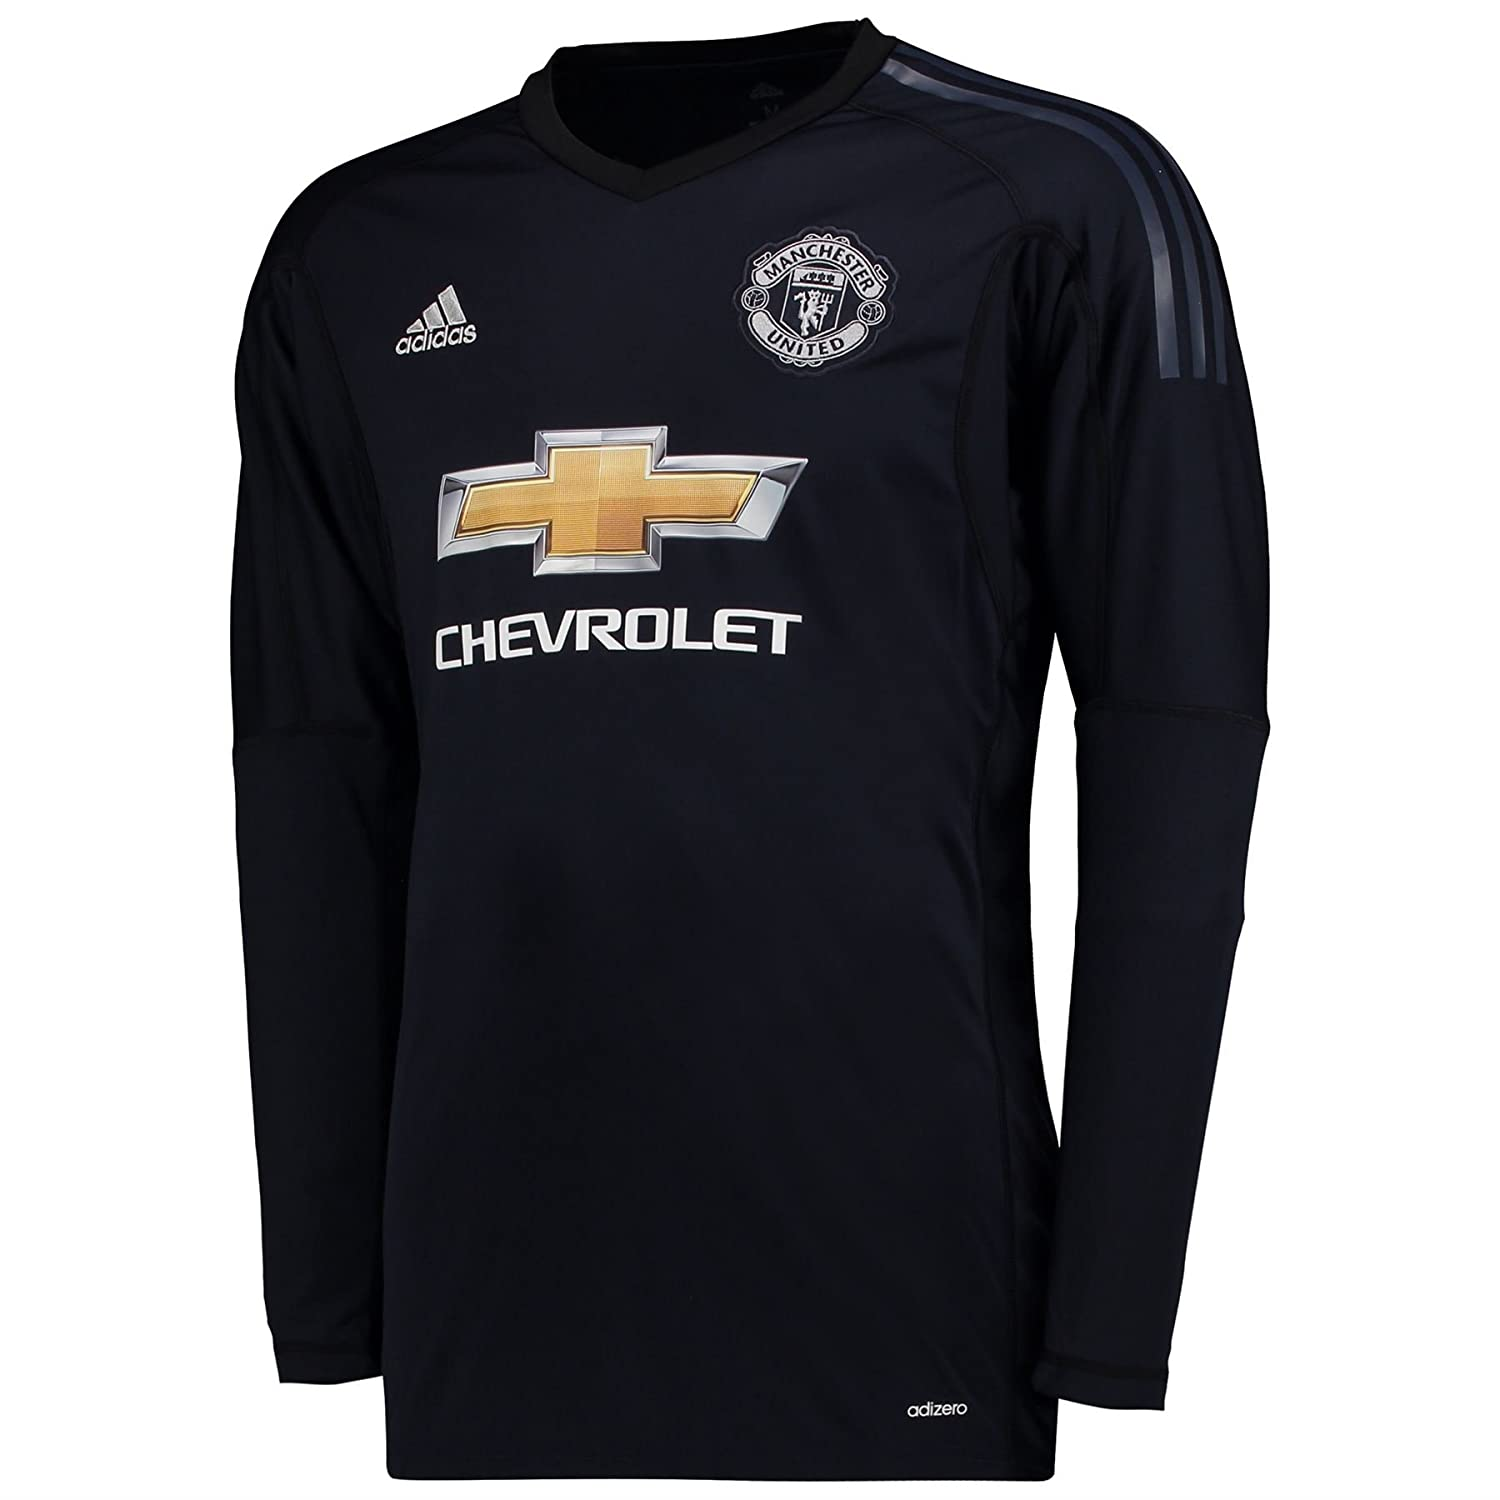 ec5496756c0 Manchester United Home Goalkeeper Shirt 2017-18 - Kids with De Gea 1  printing - 9-10 Years: Amazon.co.uk: Clothing